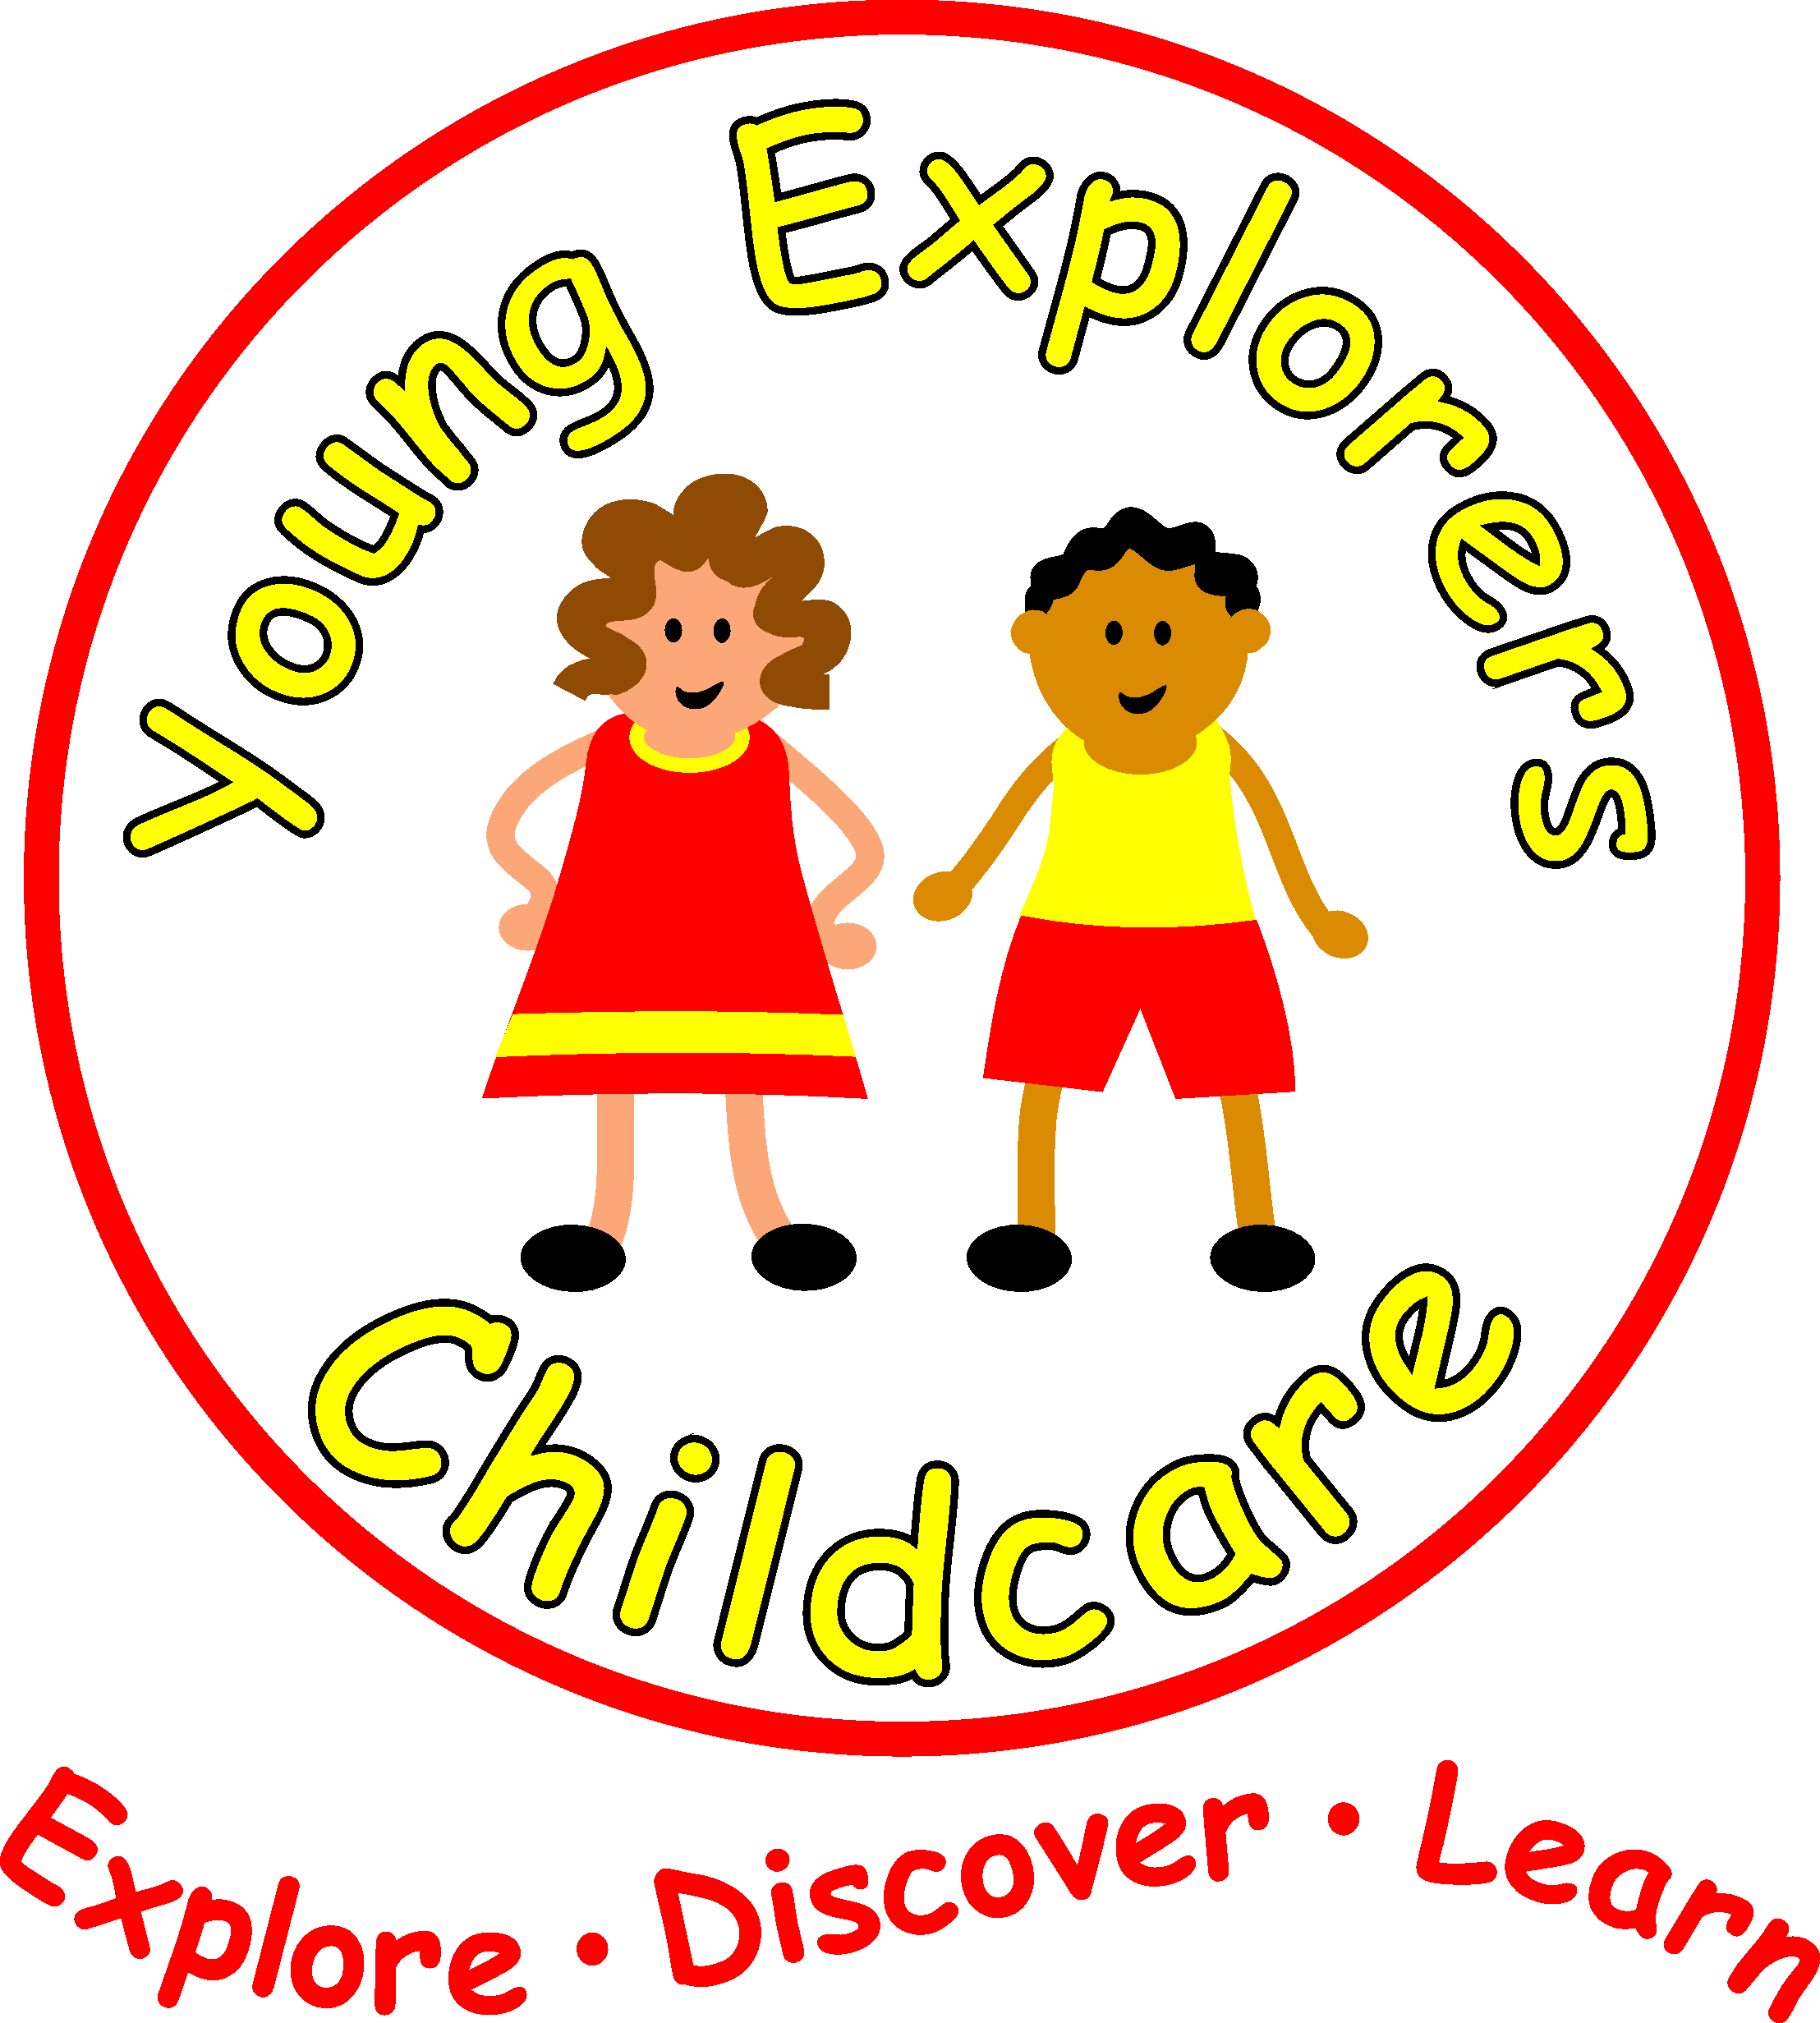 Young Explorers Childcare | Nursery based in Chell | Stoke-On-Trent | Staffordshire